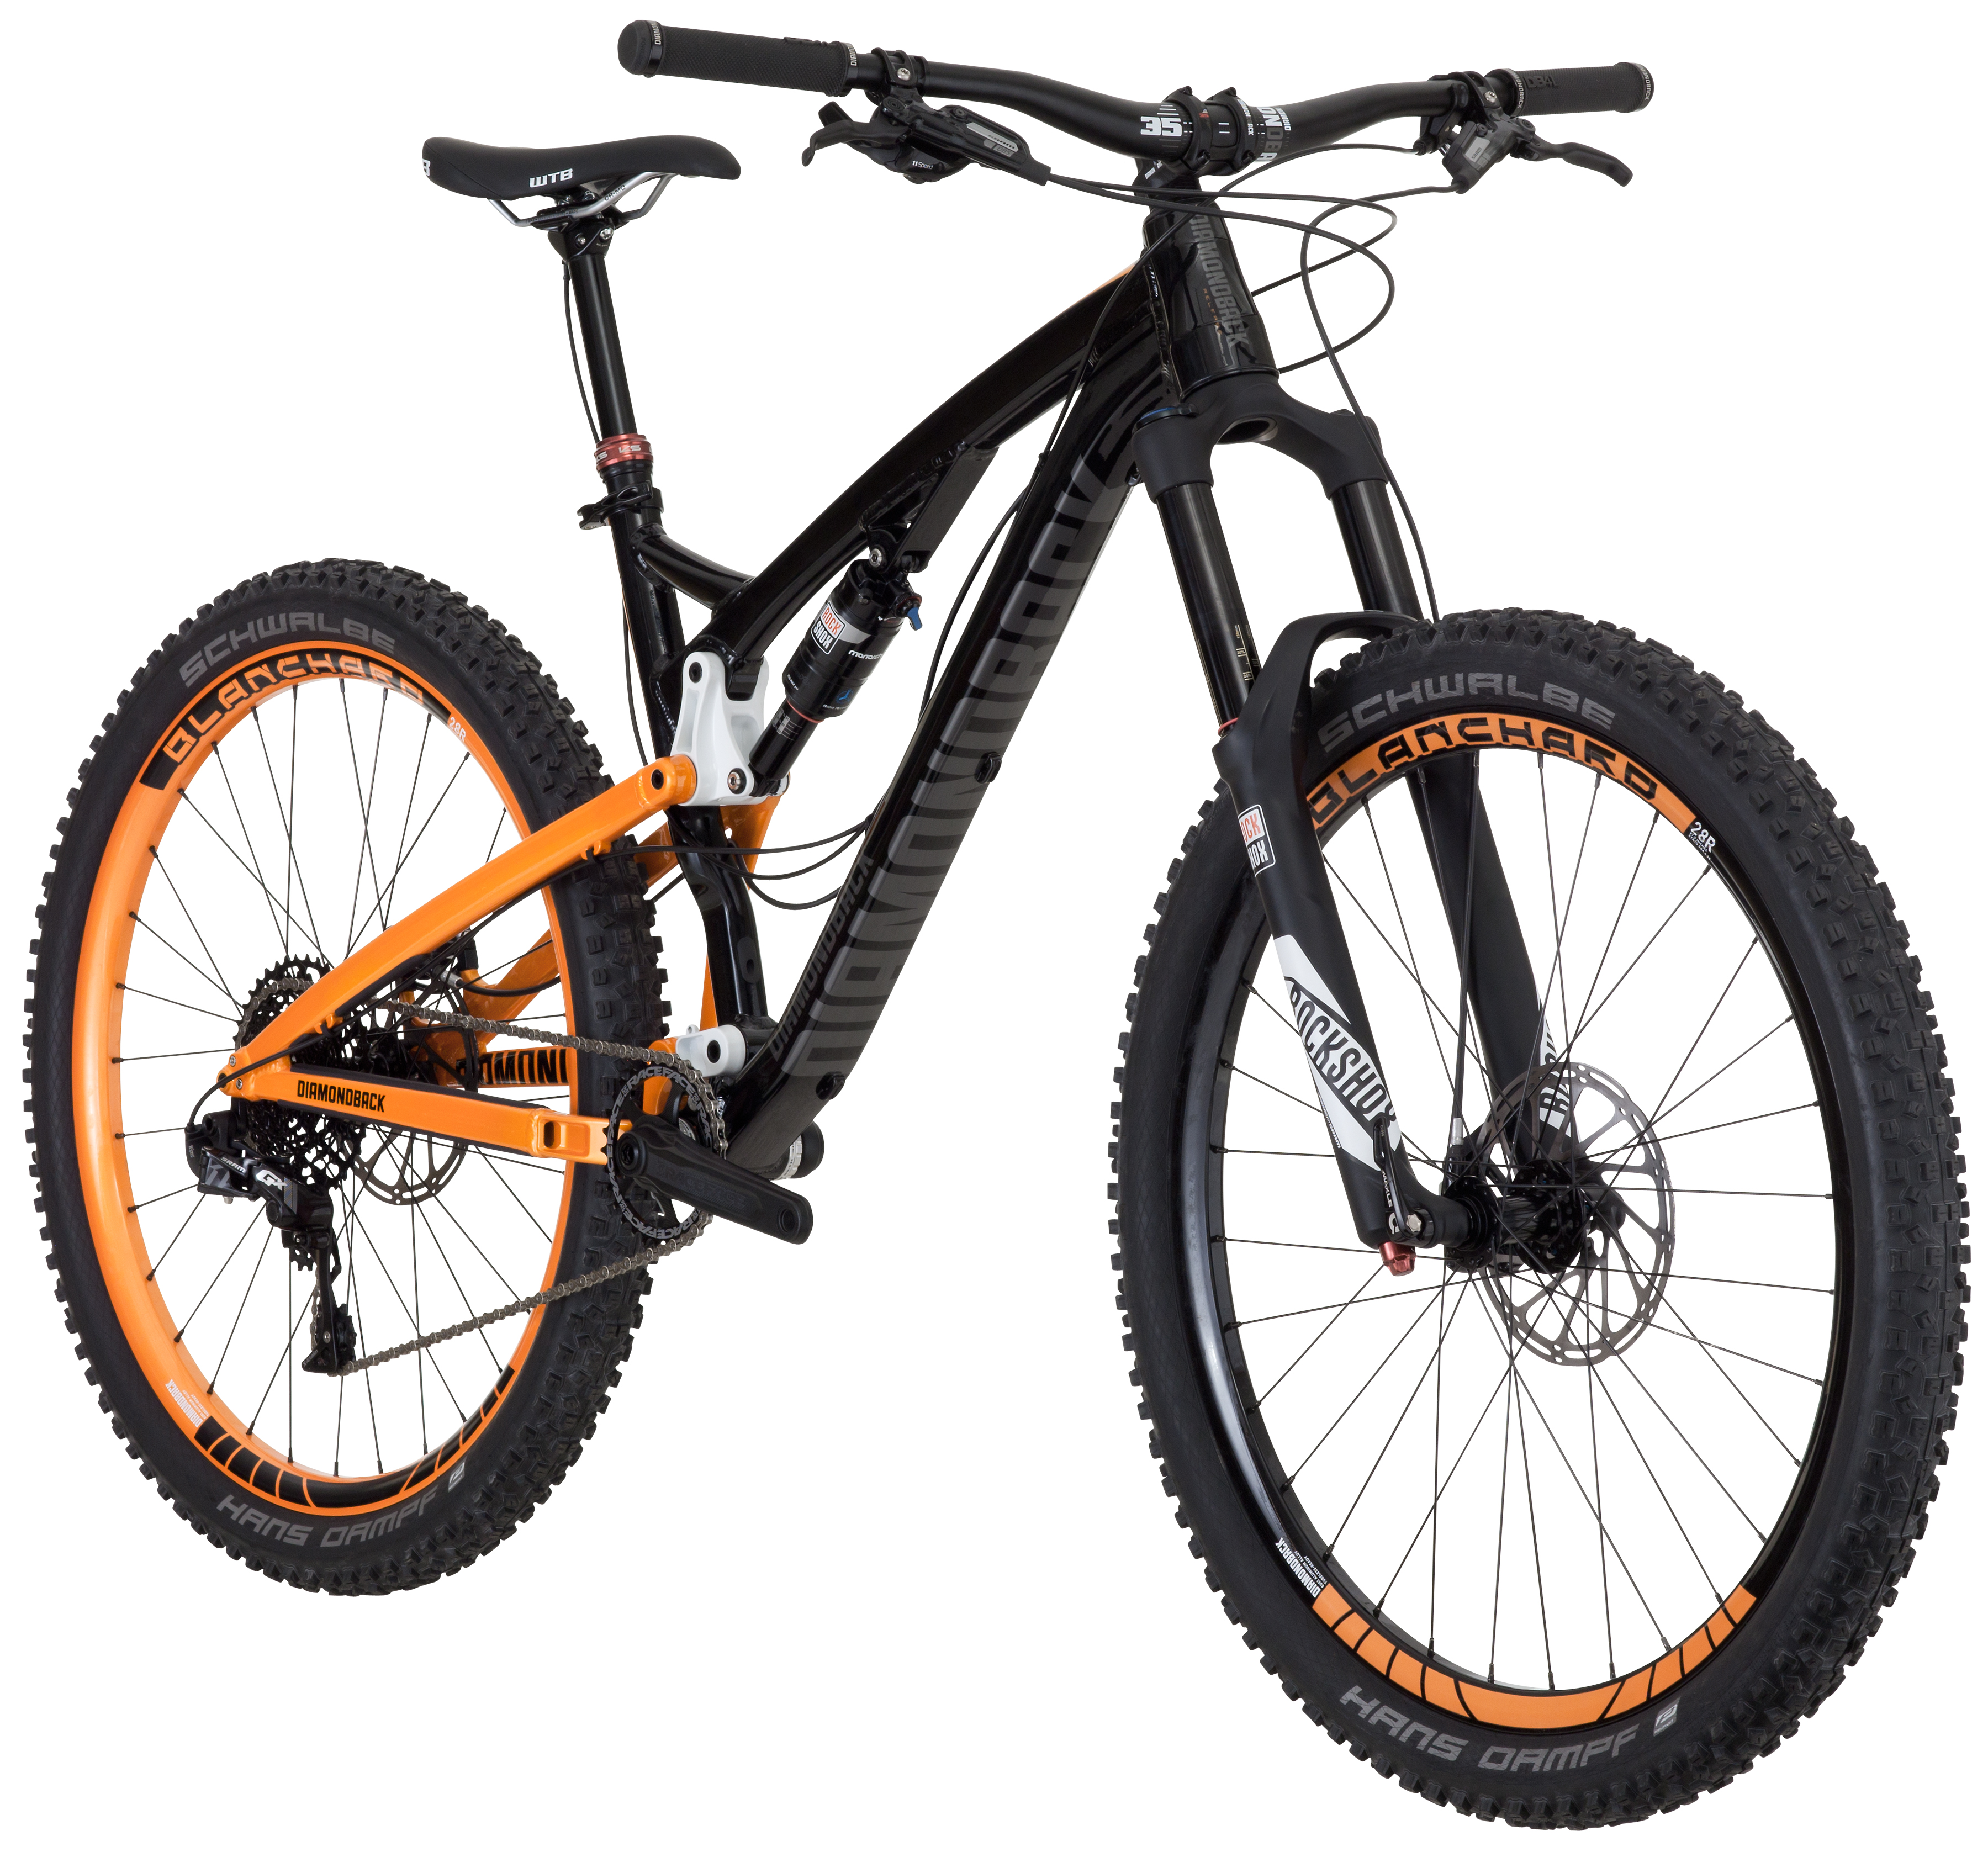 Two New Trail Bikes From Diamondback The Catch And